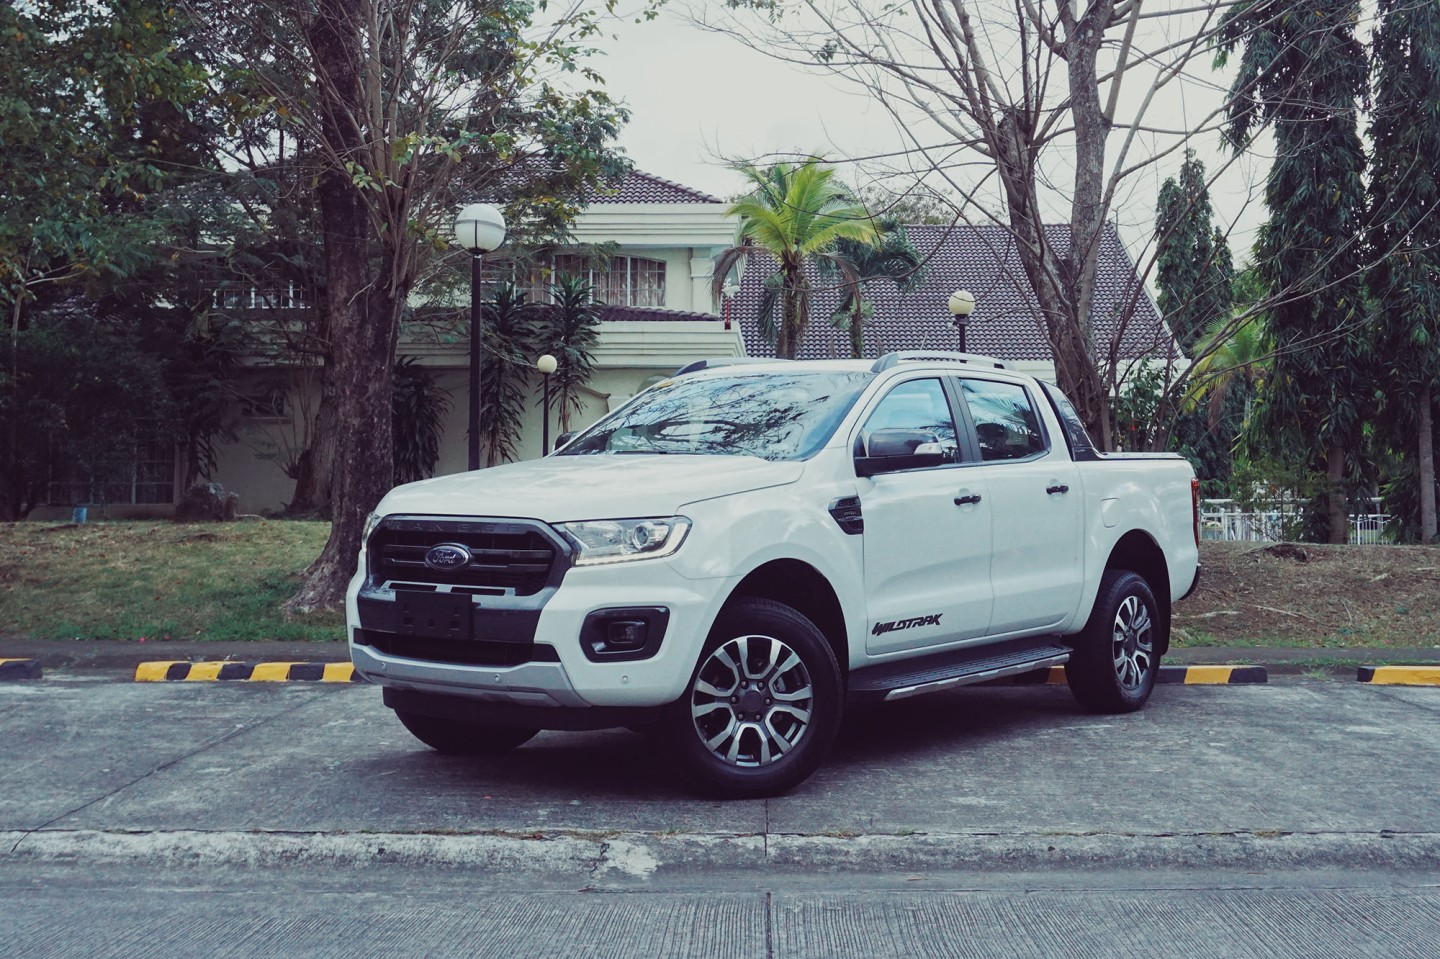 Enjoy Discounts Of As Much As P60,000 When You Buy A New Ford Ranger This February